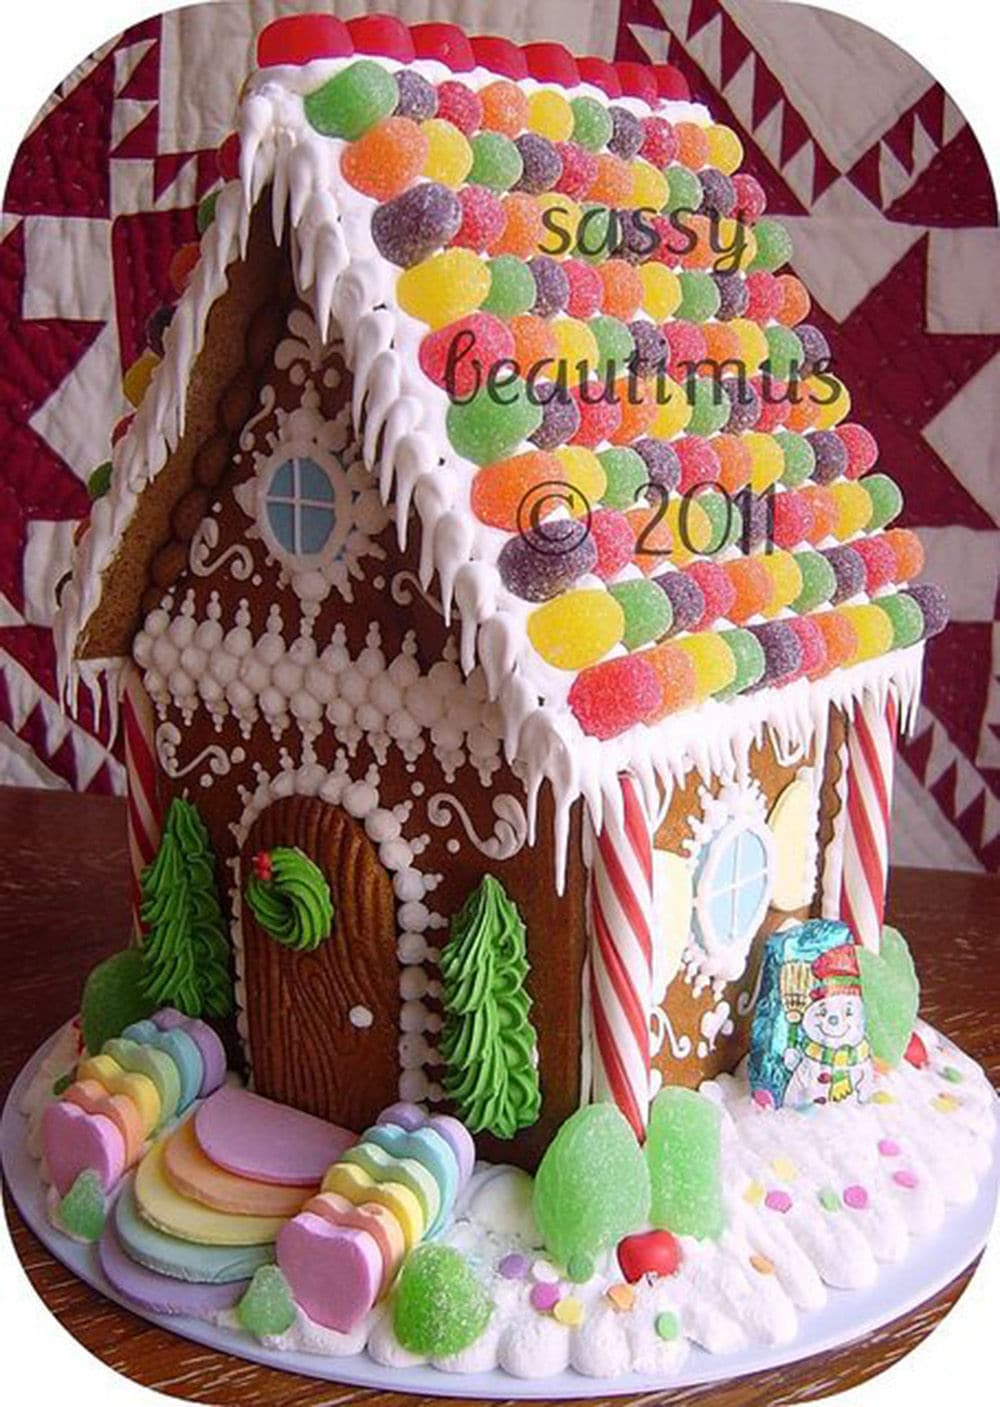 cute gumdrop gingerbread house! I love the nella wafer stairs